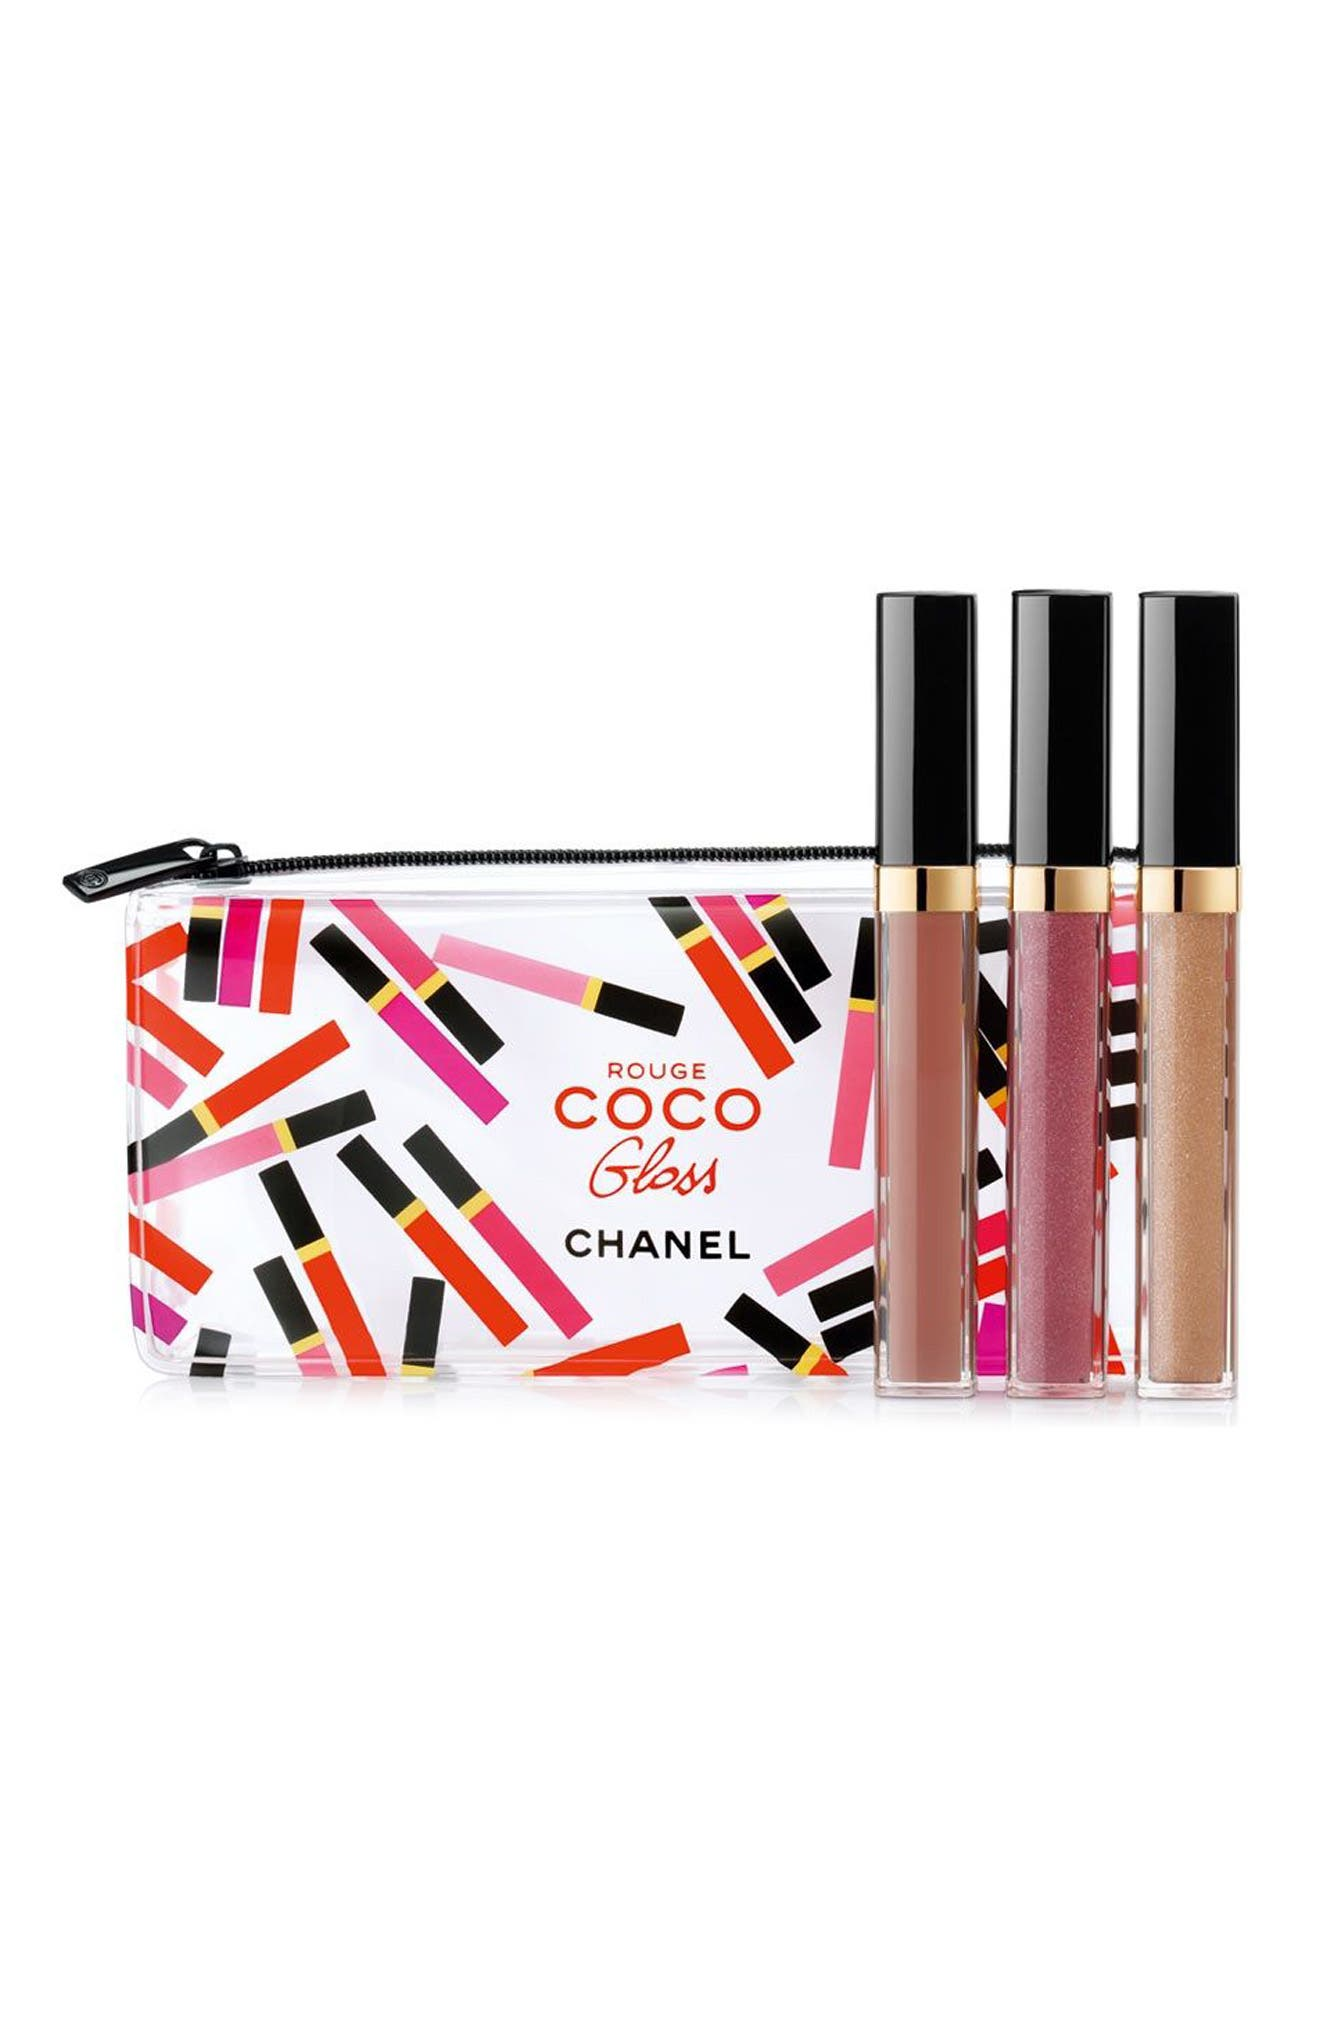 CHANEL NUDE MOOD ROUGE COCO GLOSS 